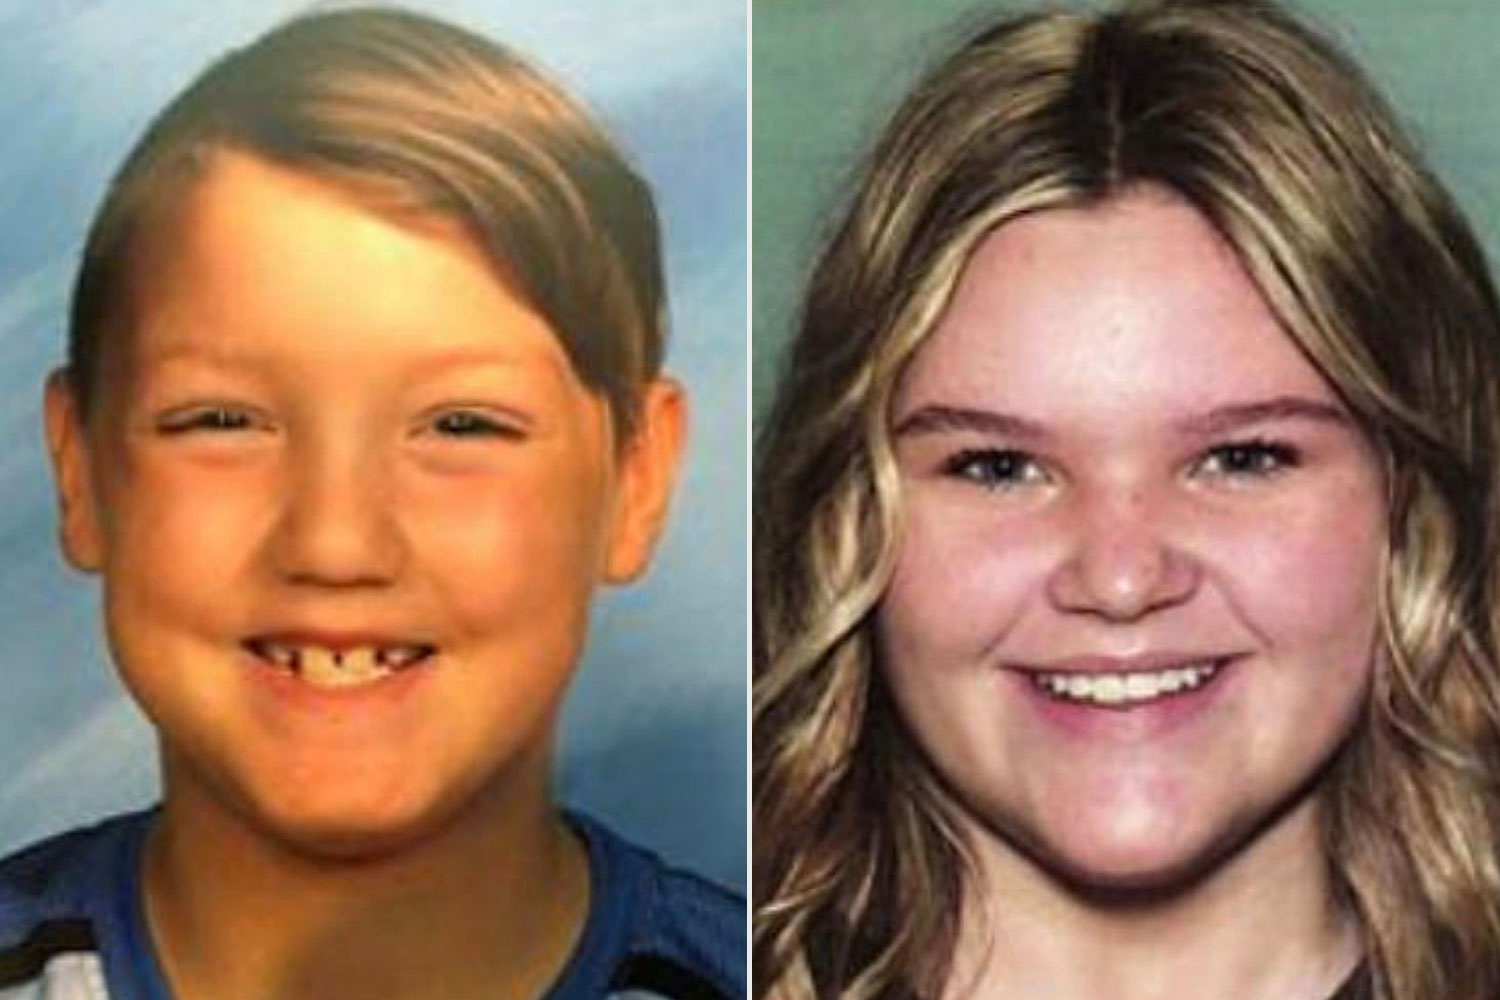 Grandfather Asks Lori Vallow's Husband to 'Do a Lot of Soul Searching' and Return 2 Missing Kids